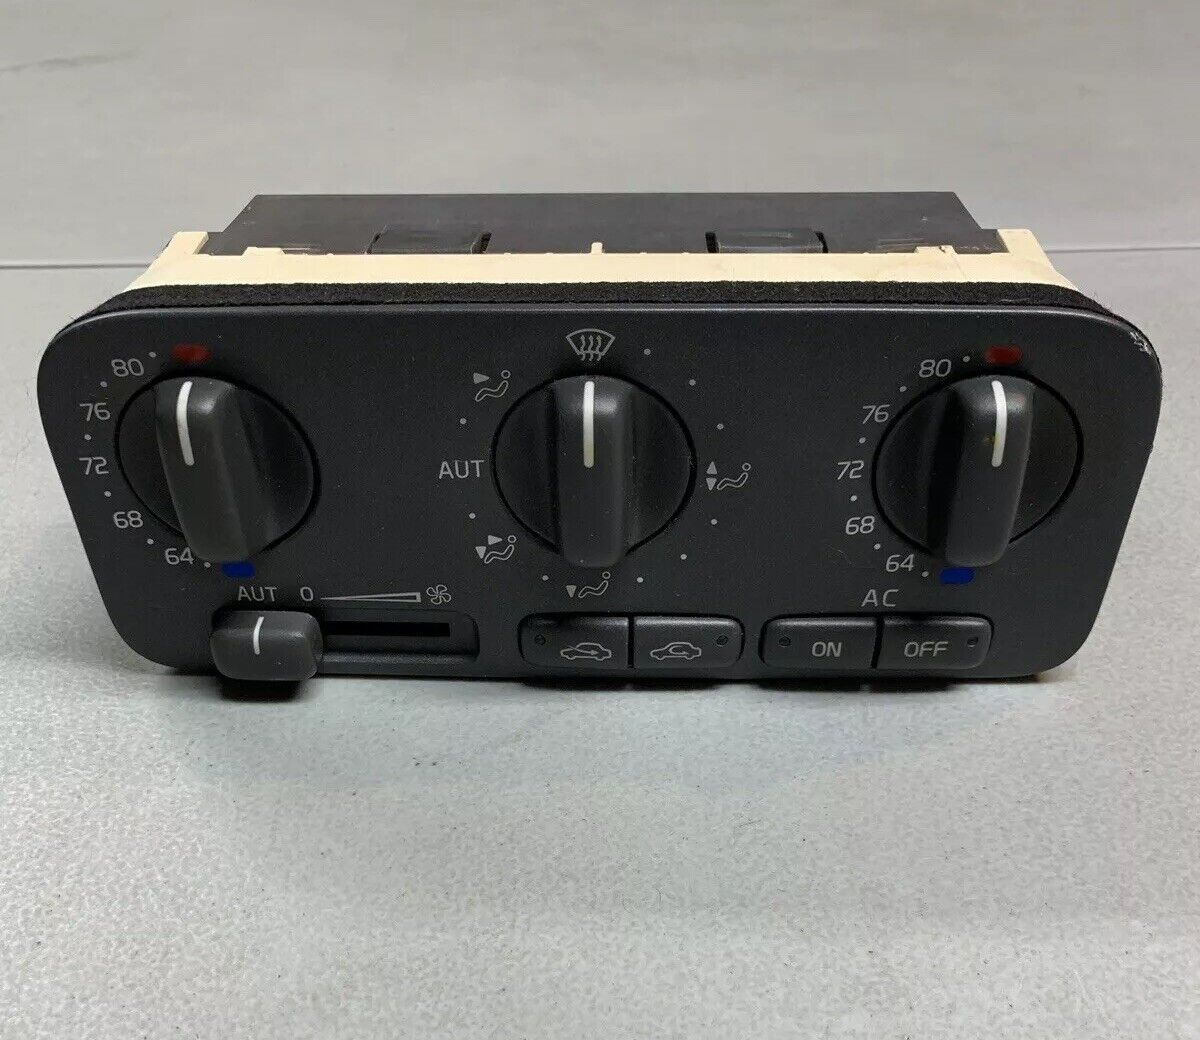 Volvo V70 Classic C70 S70 Heater Automatic Air Conditioning Controls 9171799